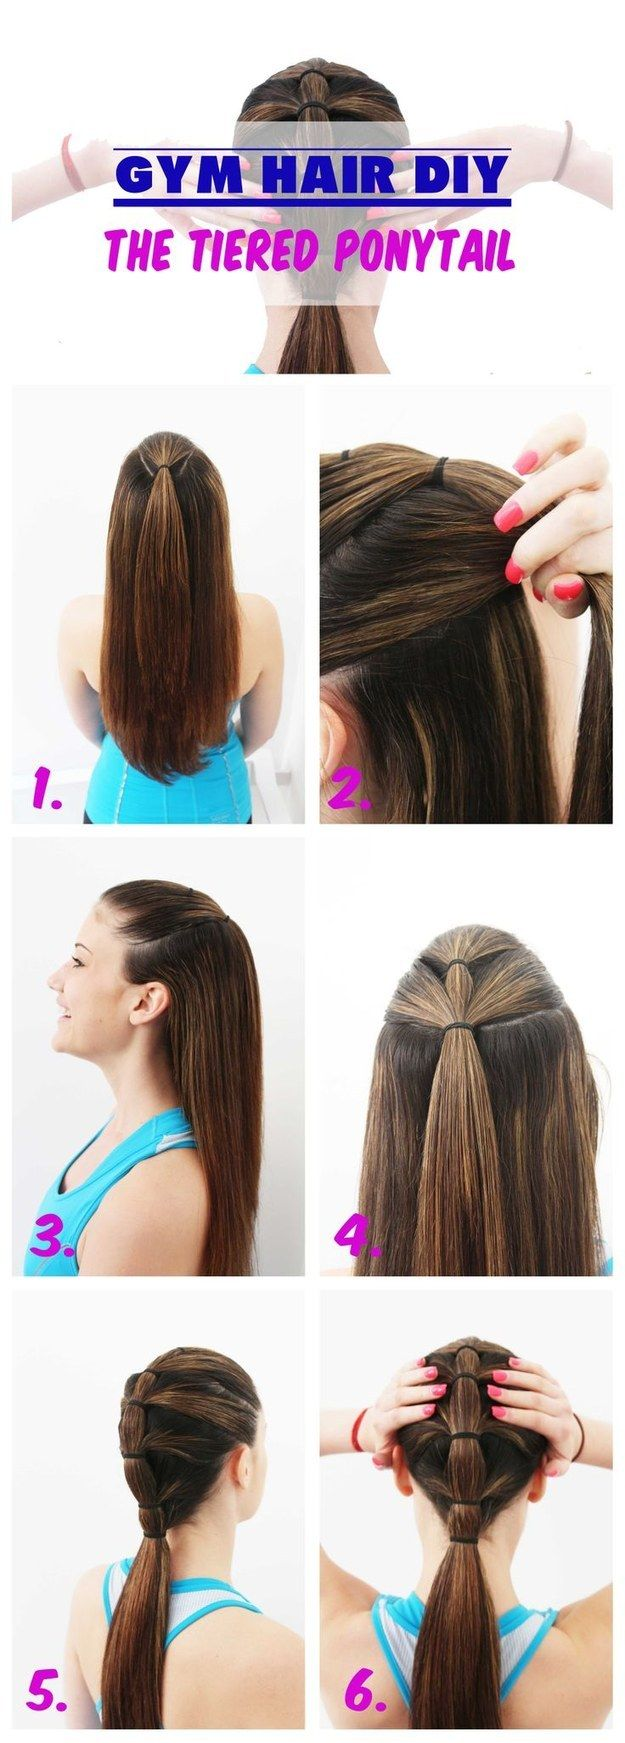 Easy Hairstyles On The Go 25 Best Ideas About Volleyball Hair On Pinterest Volleyball